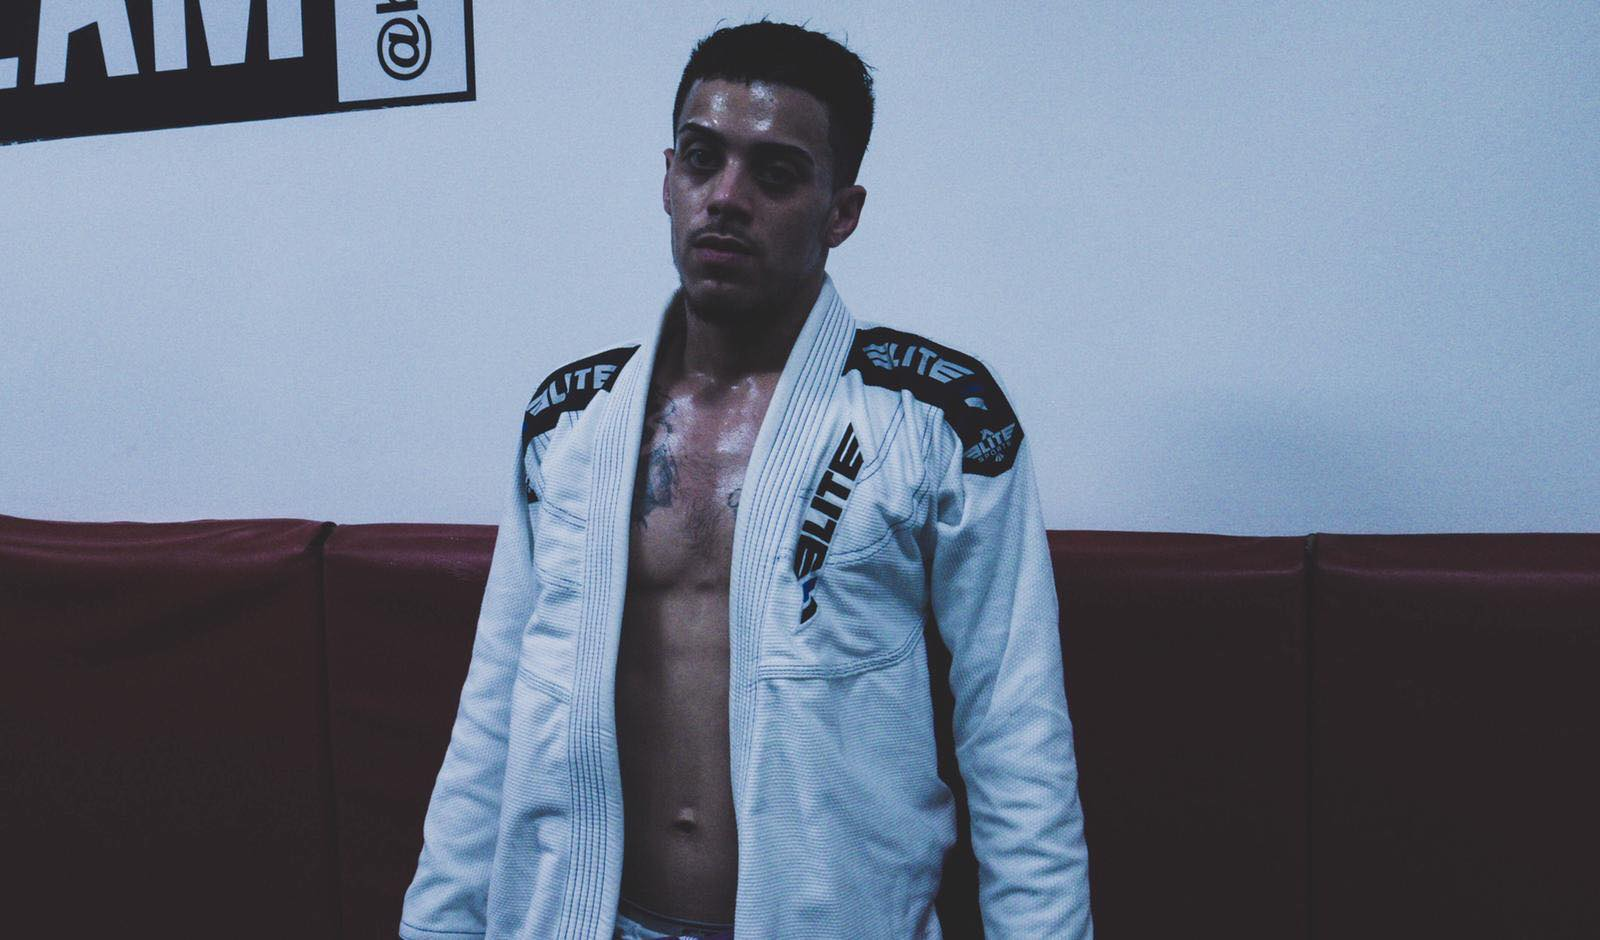 Elite sports Team Elite BJJ Jefferson Zelaya image2.jpeg